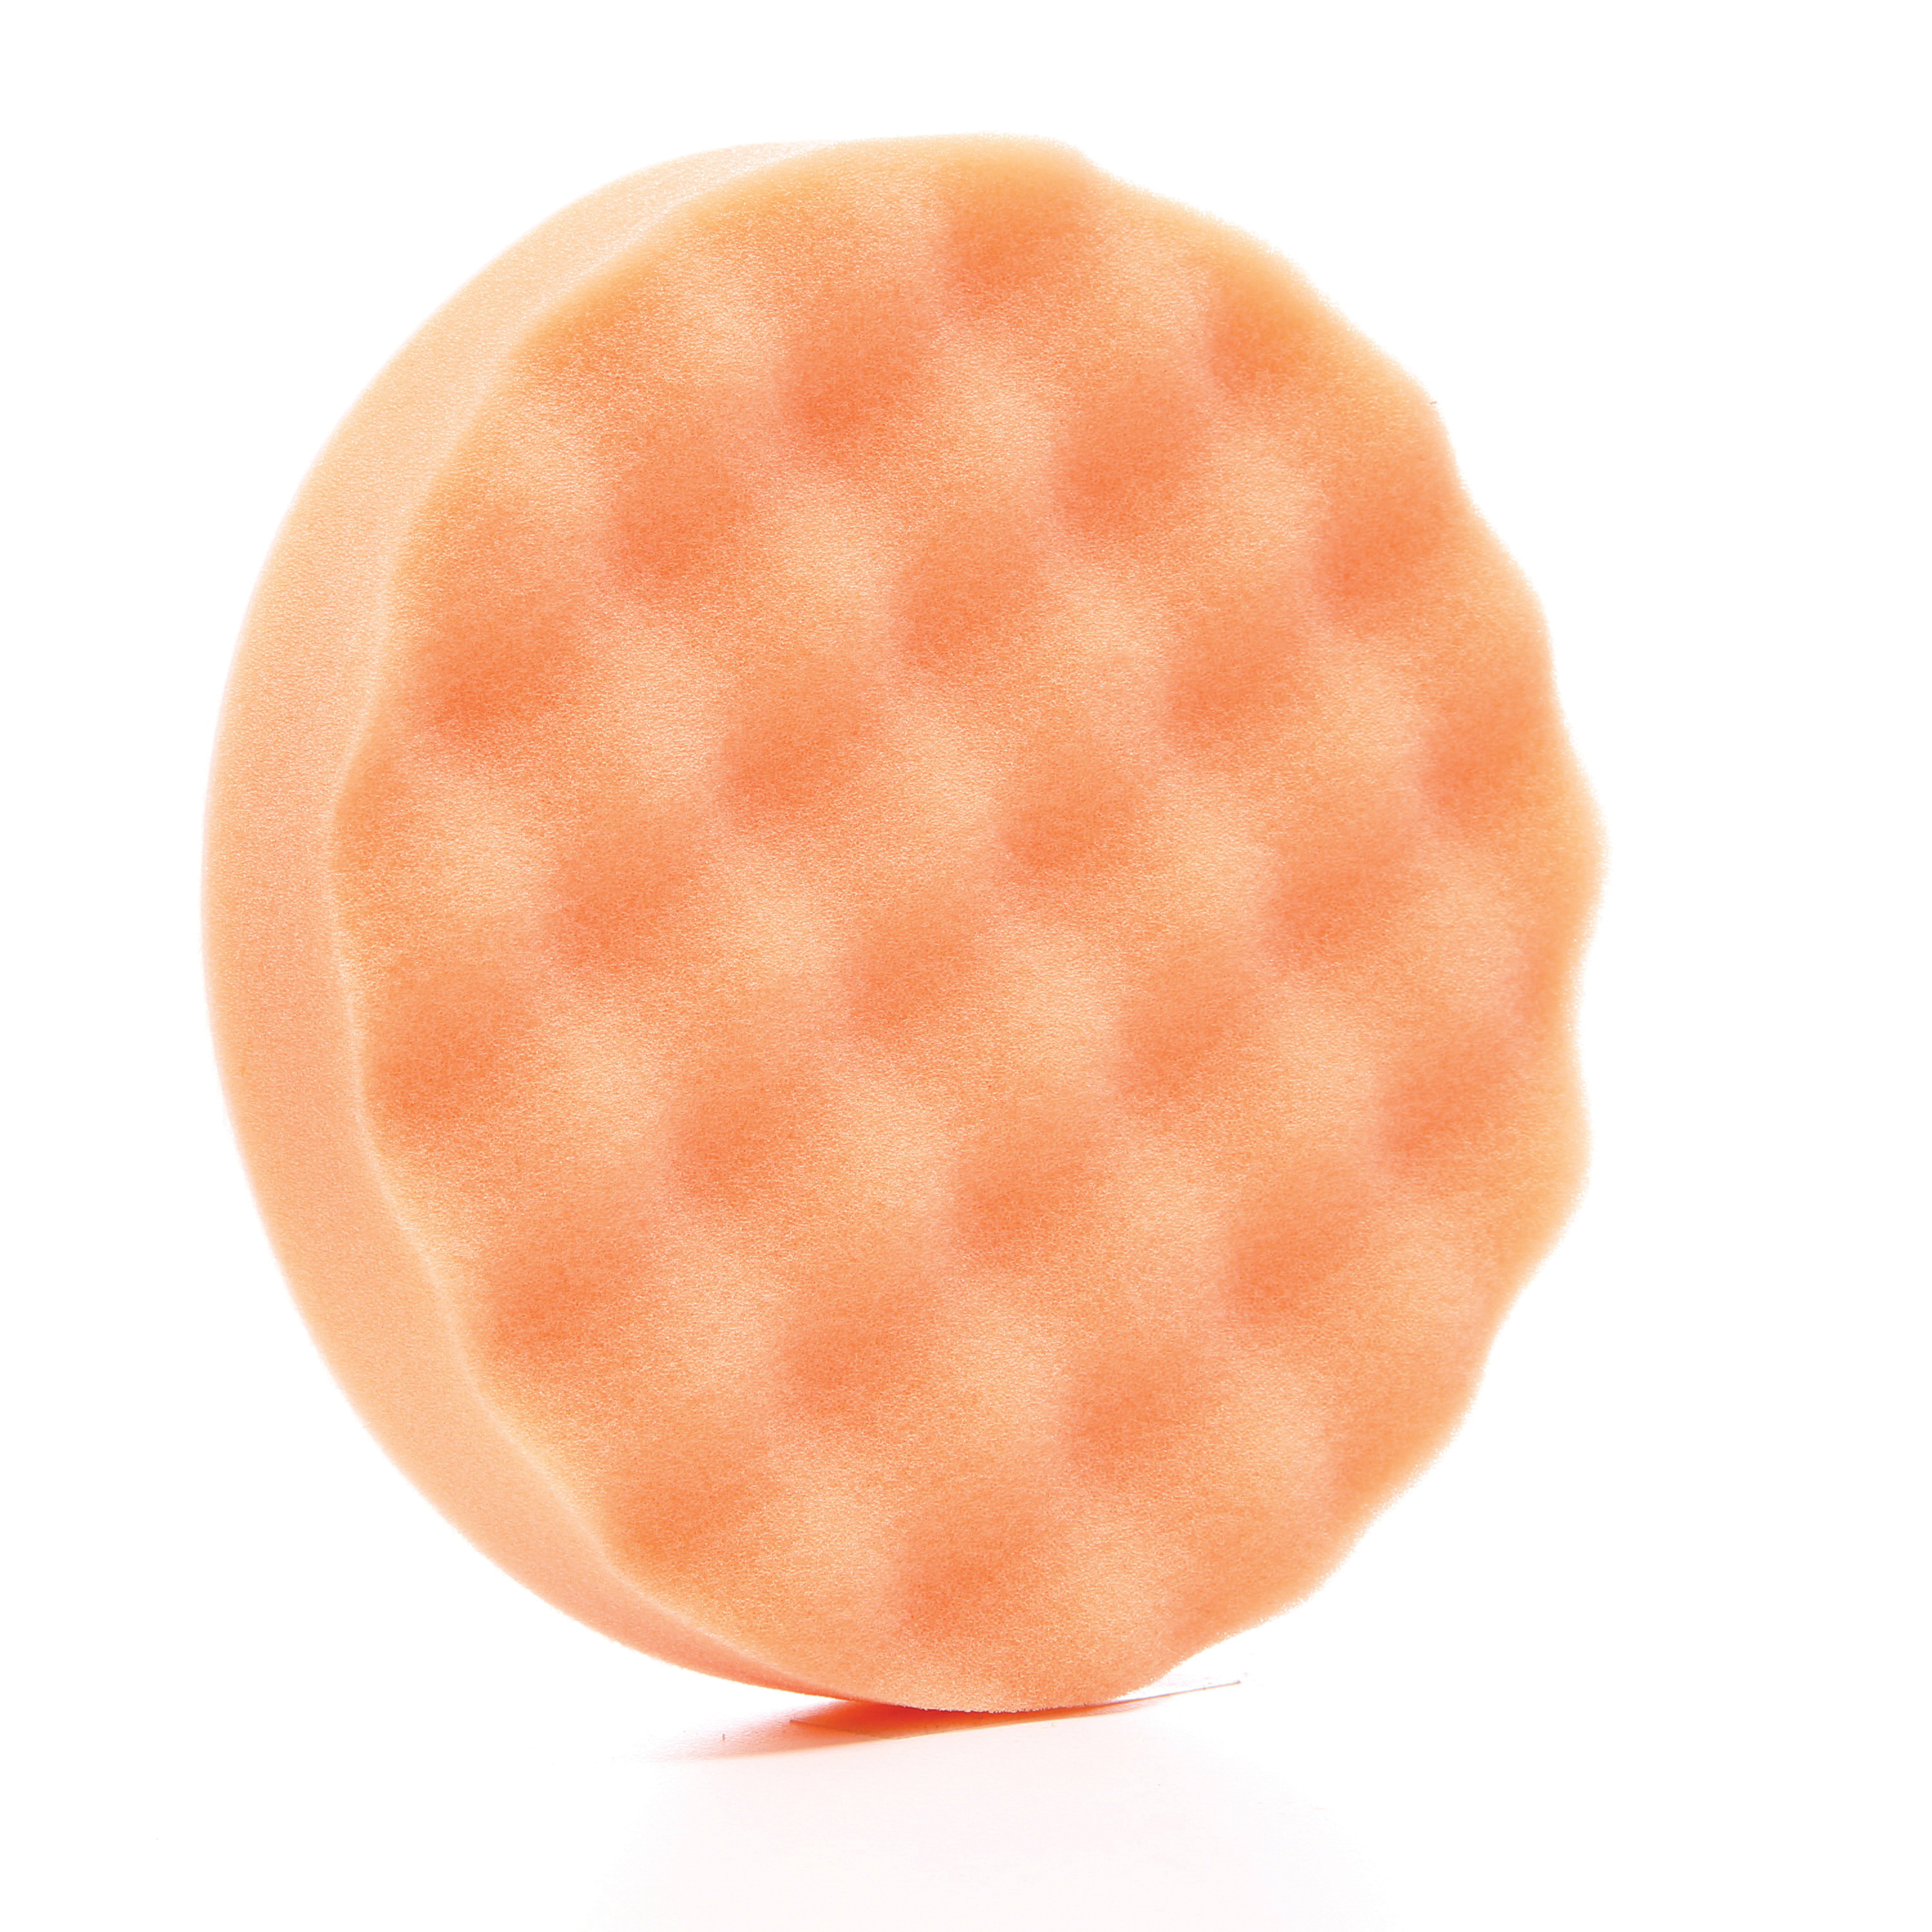 3M™ 048011-18210 Light Duty Round Buffing Pad, 20 in OAD, 1 in THK, 3-3/8 in Center Hole, Non-Woven Natural/Polyester Fiber Pad